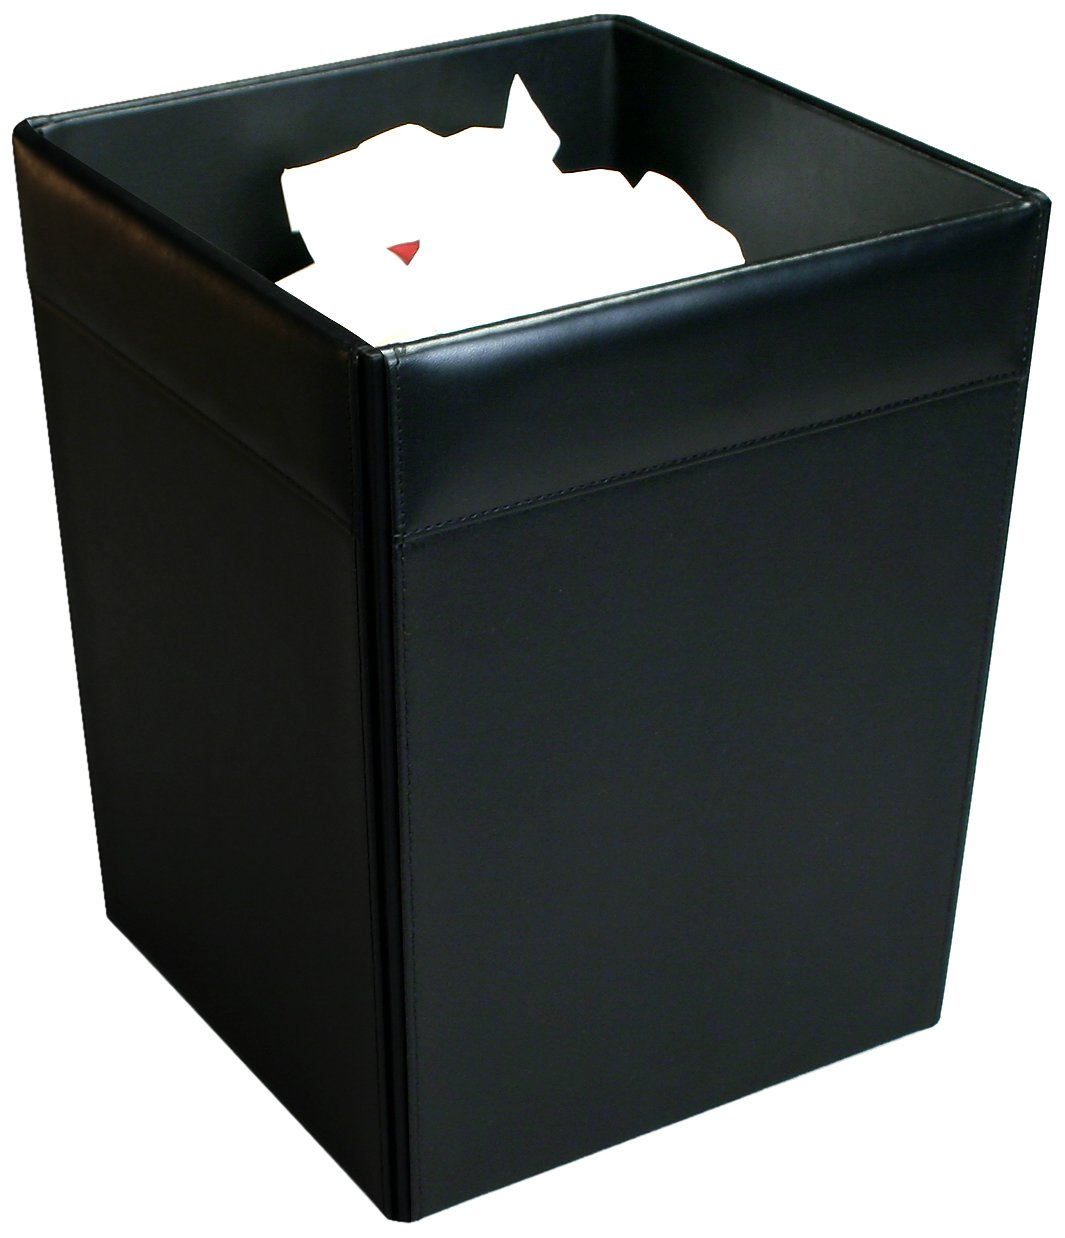 Dacasso Classic Square Waste Basket, Black A1003